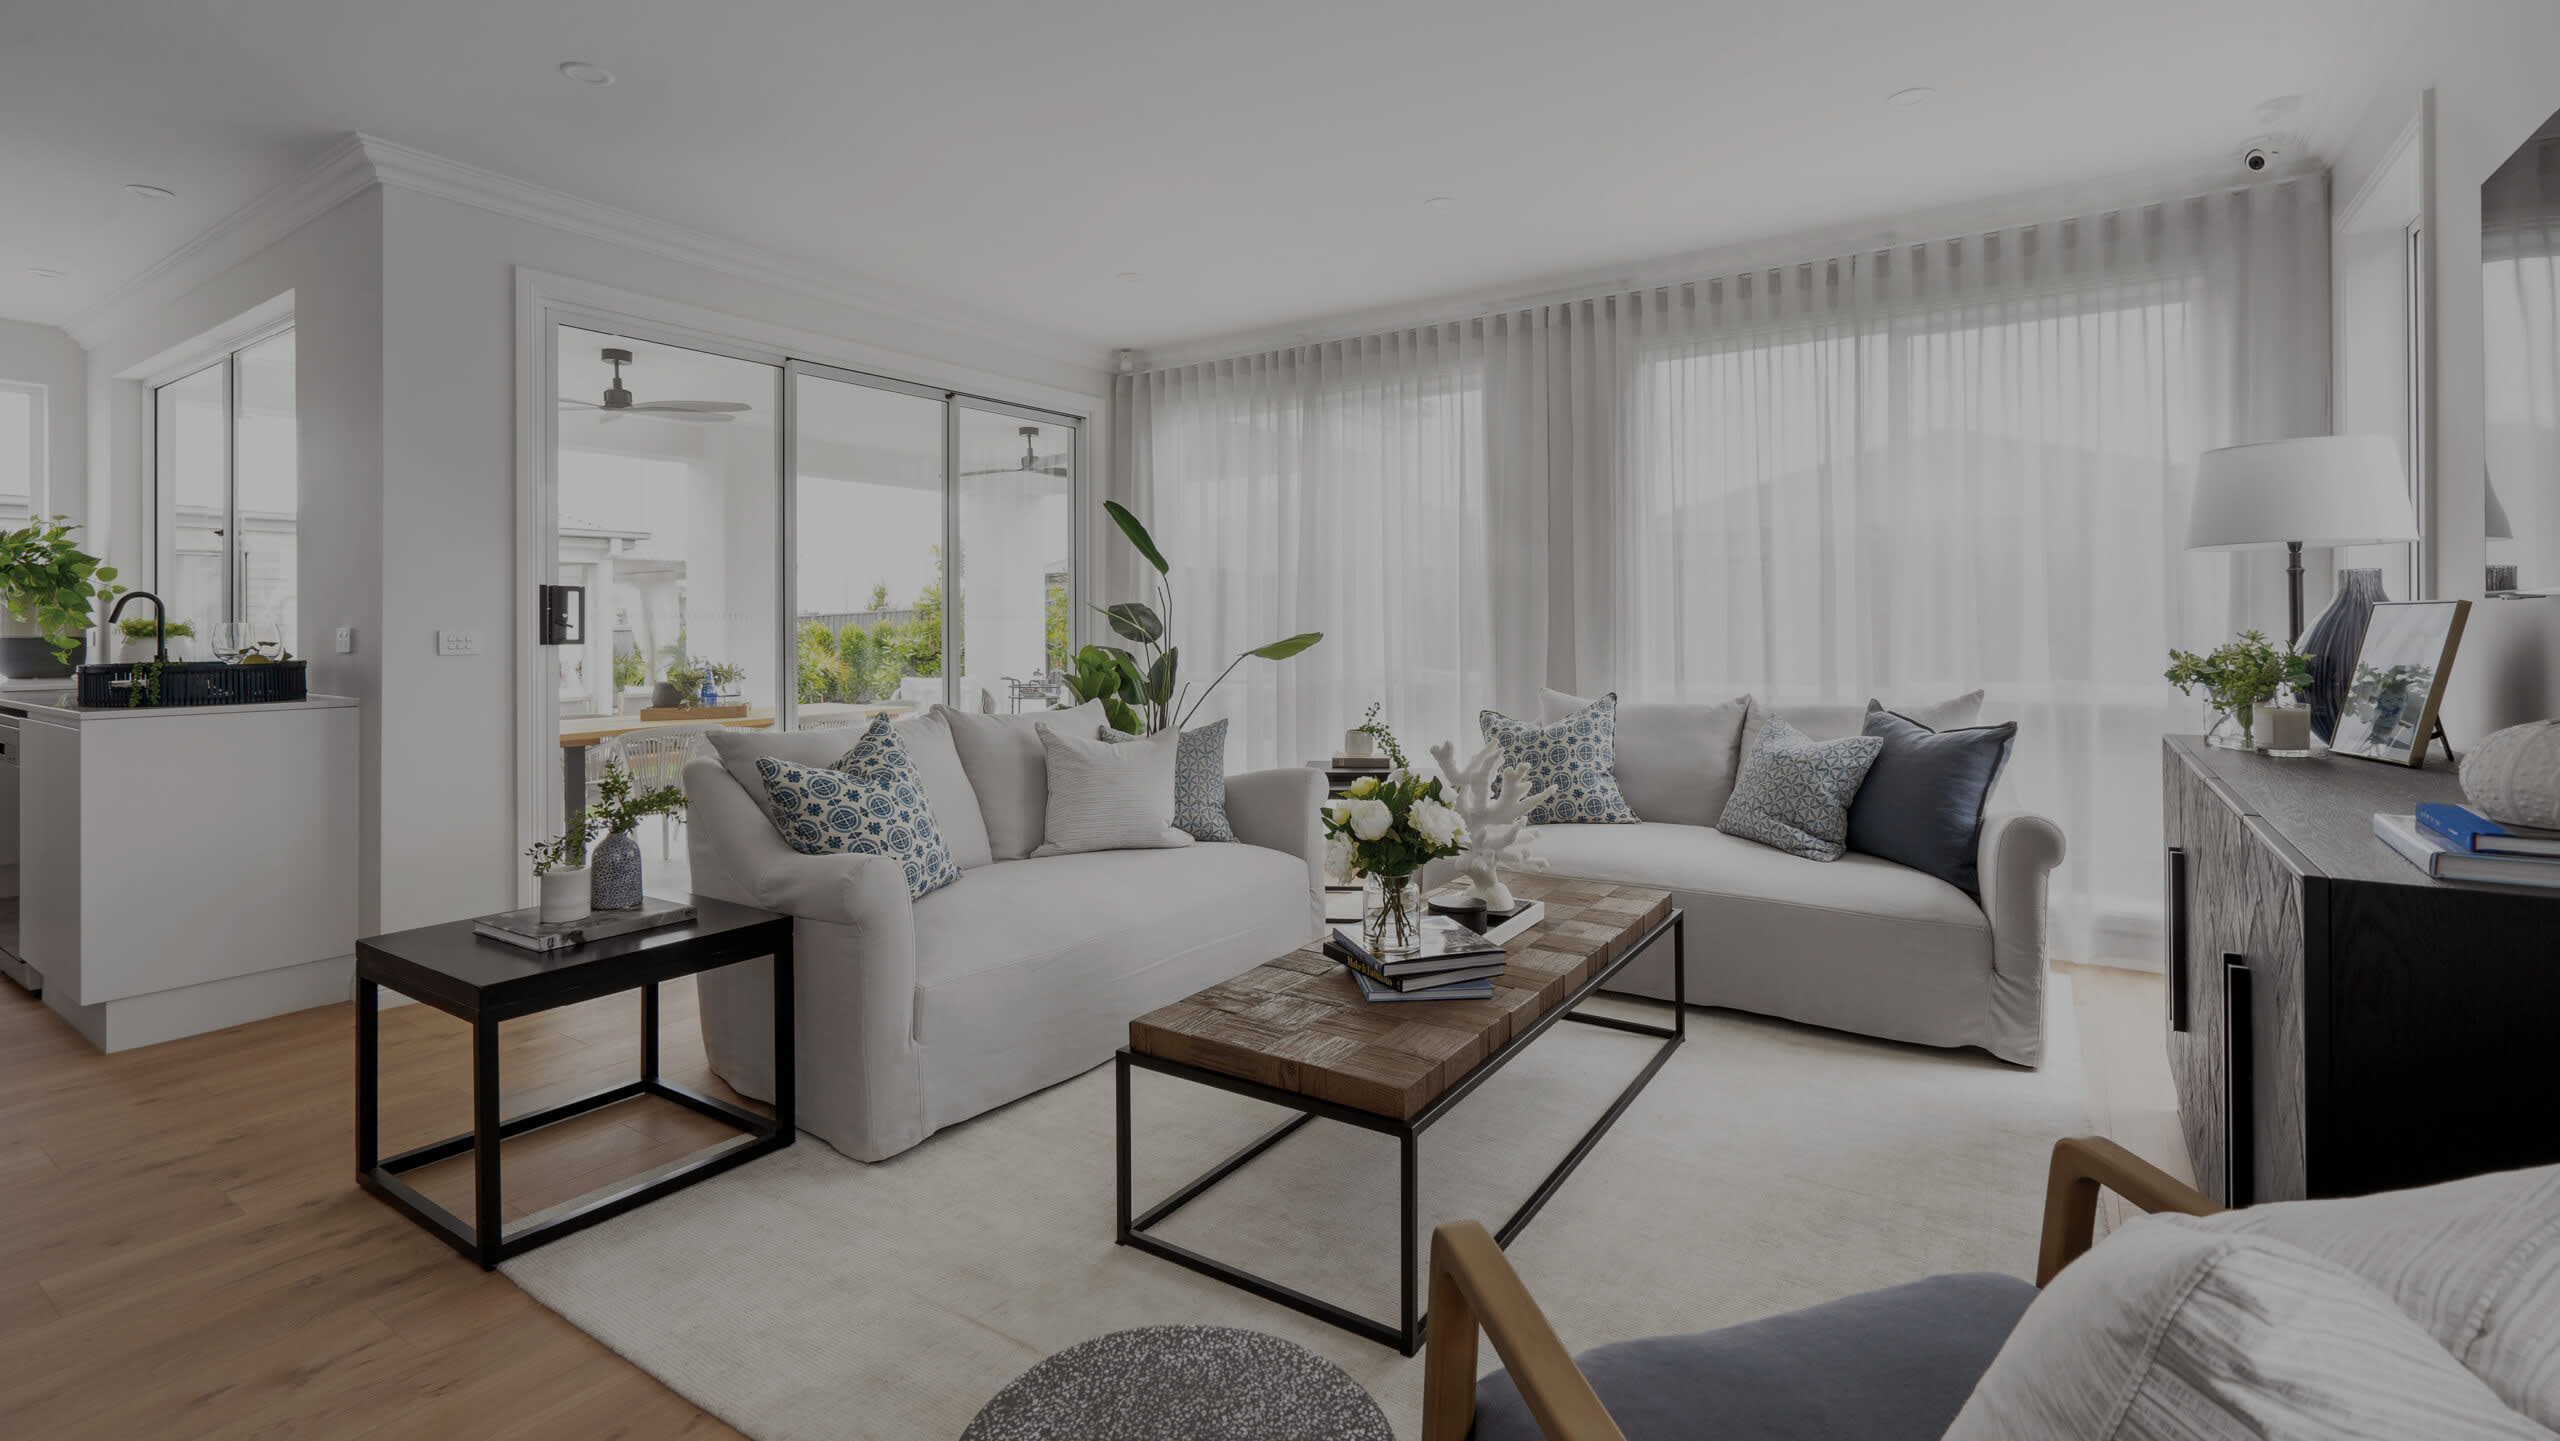 Sutton 31: Hamptons vibes with Australian liveability